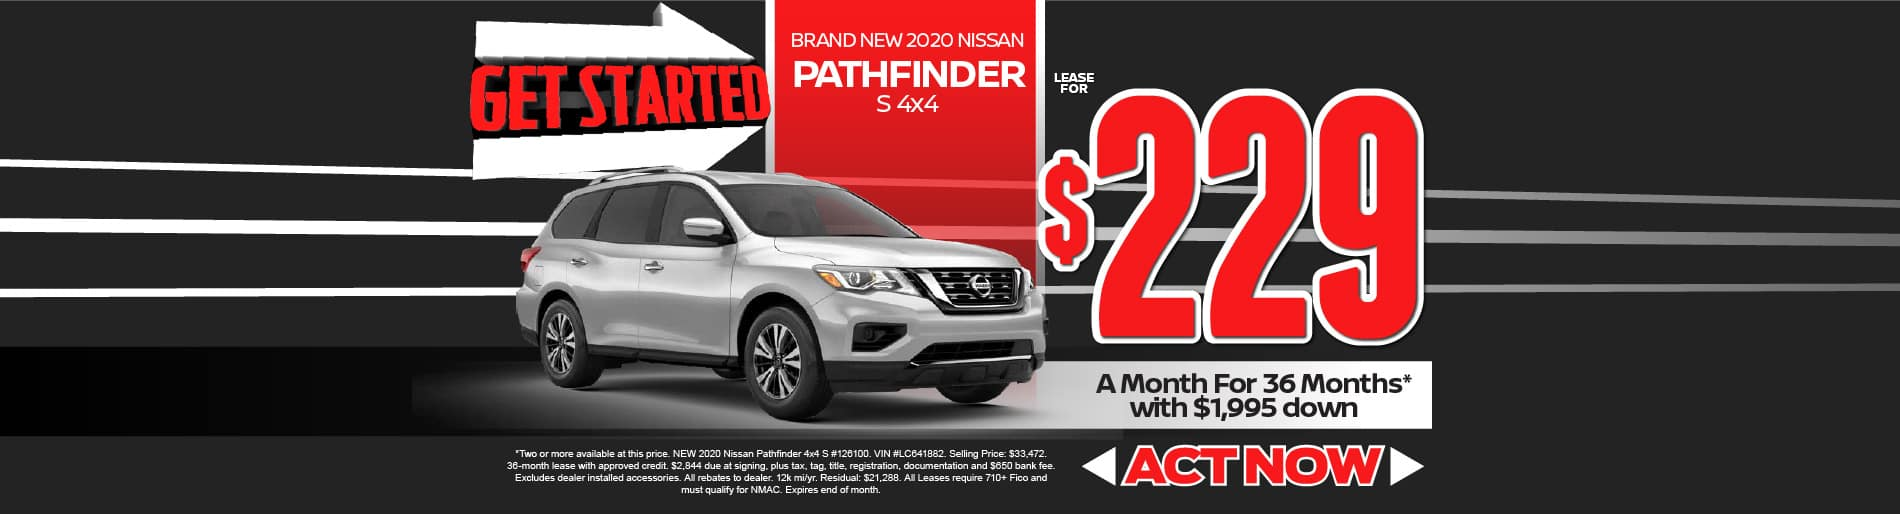 2020 Nissan Pathfinder $229/month - click to view inventory